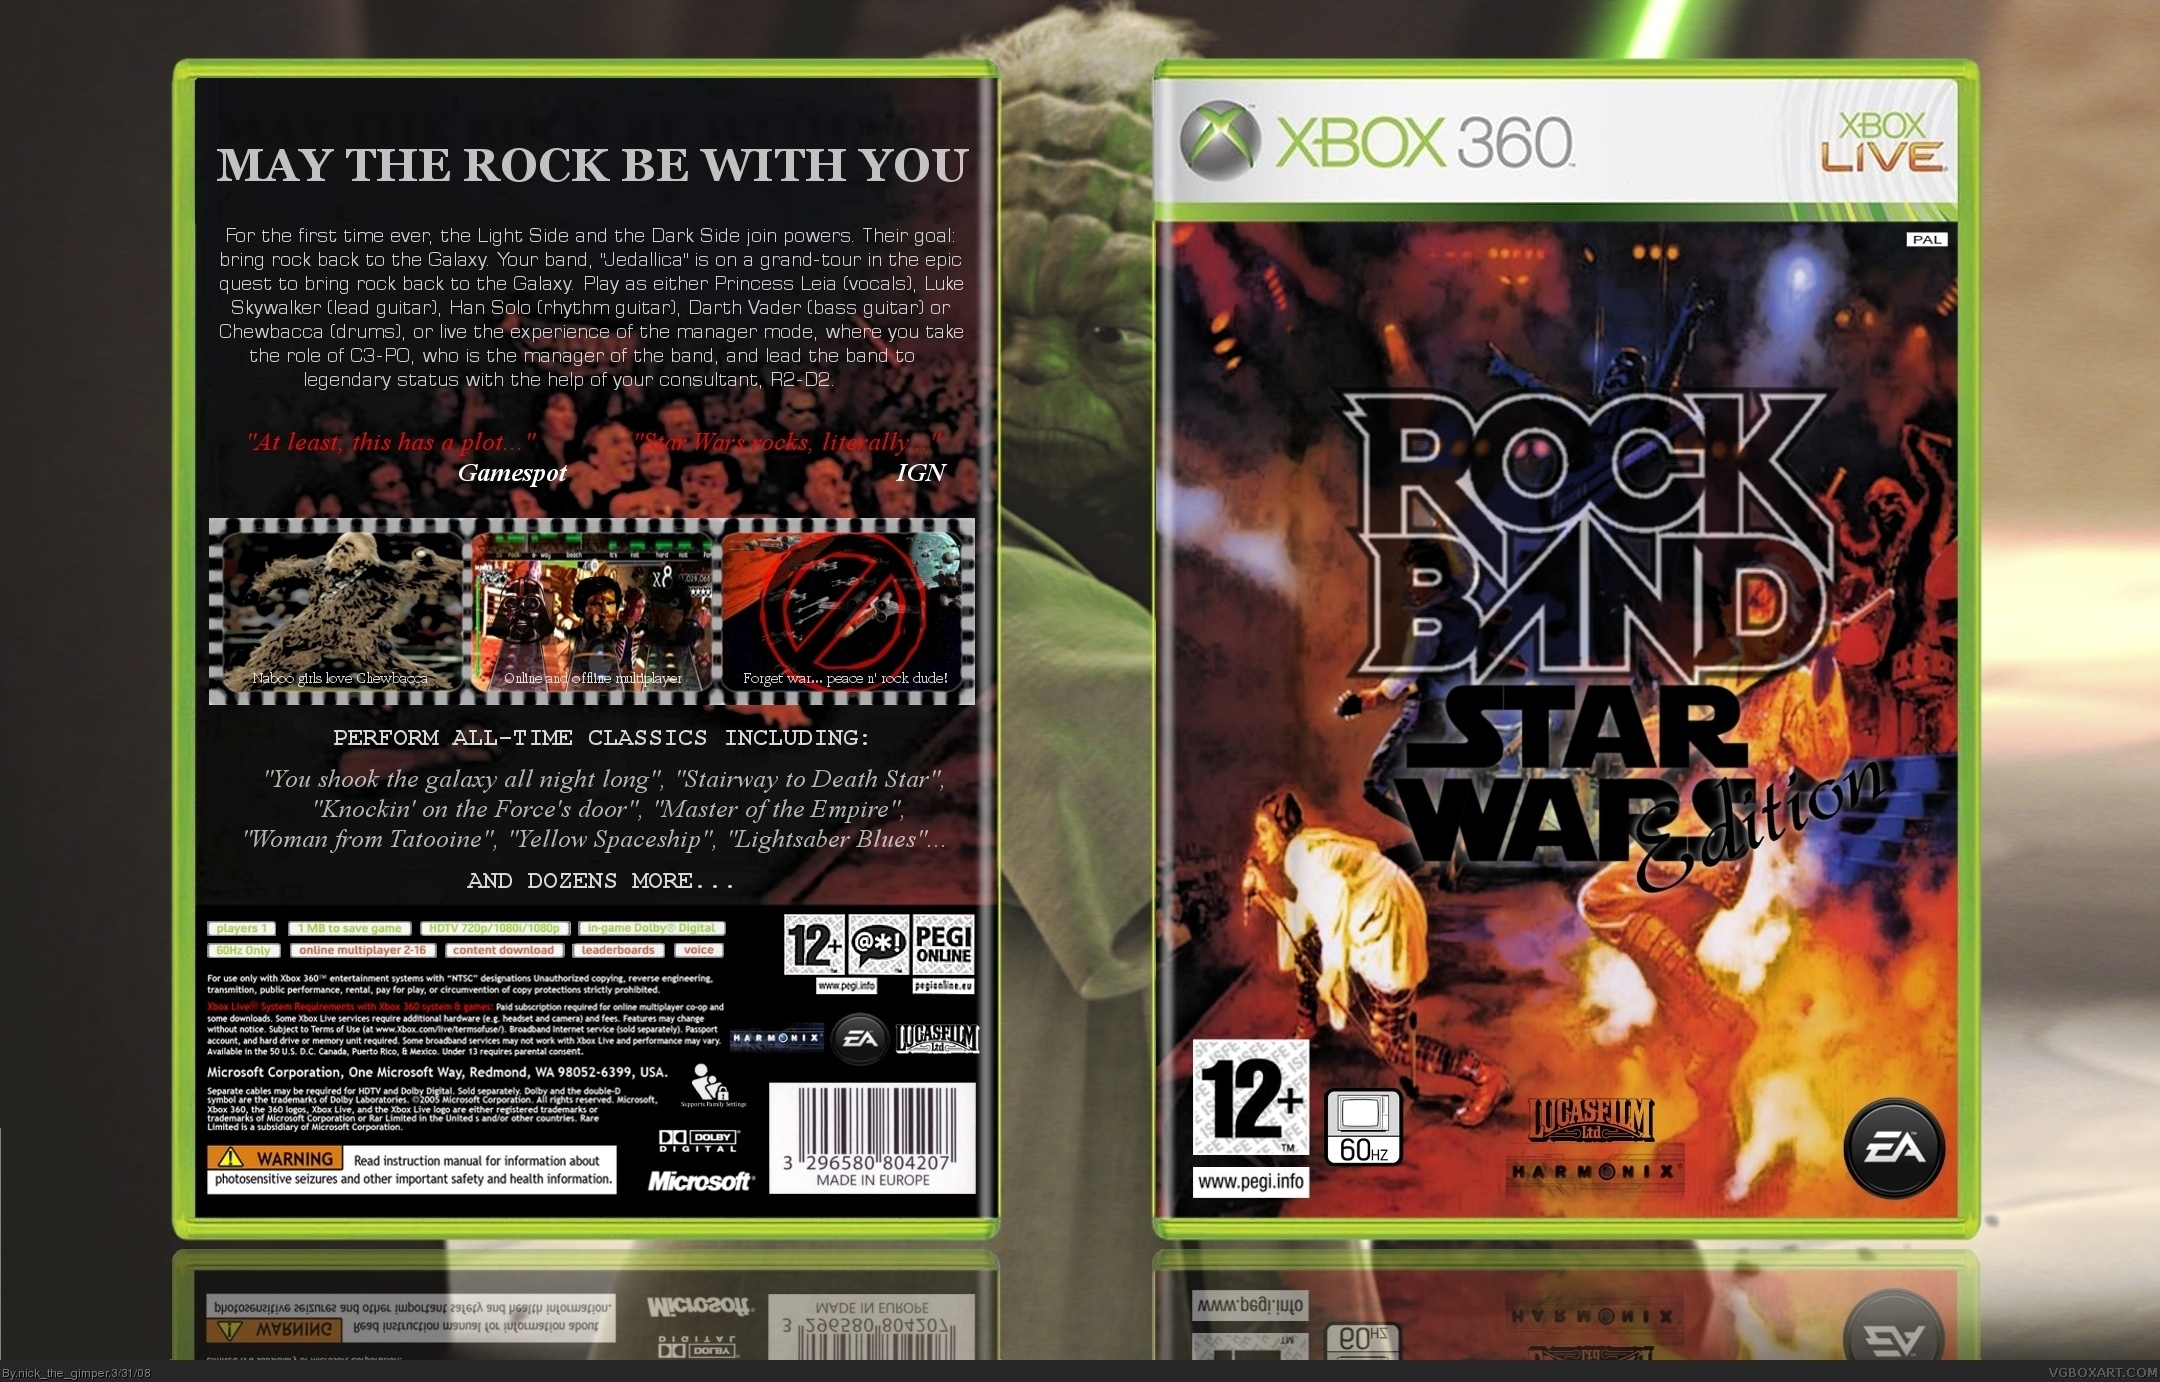 Rock Band: Star Wars Edition box cover